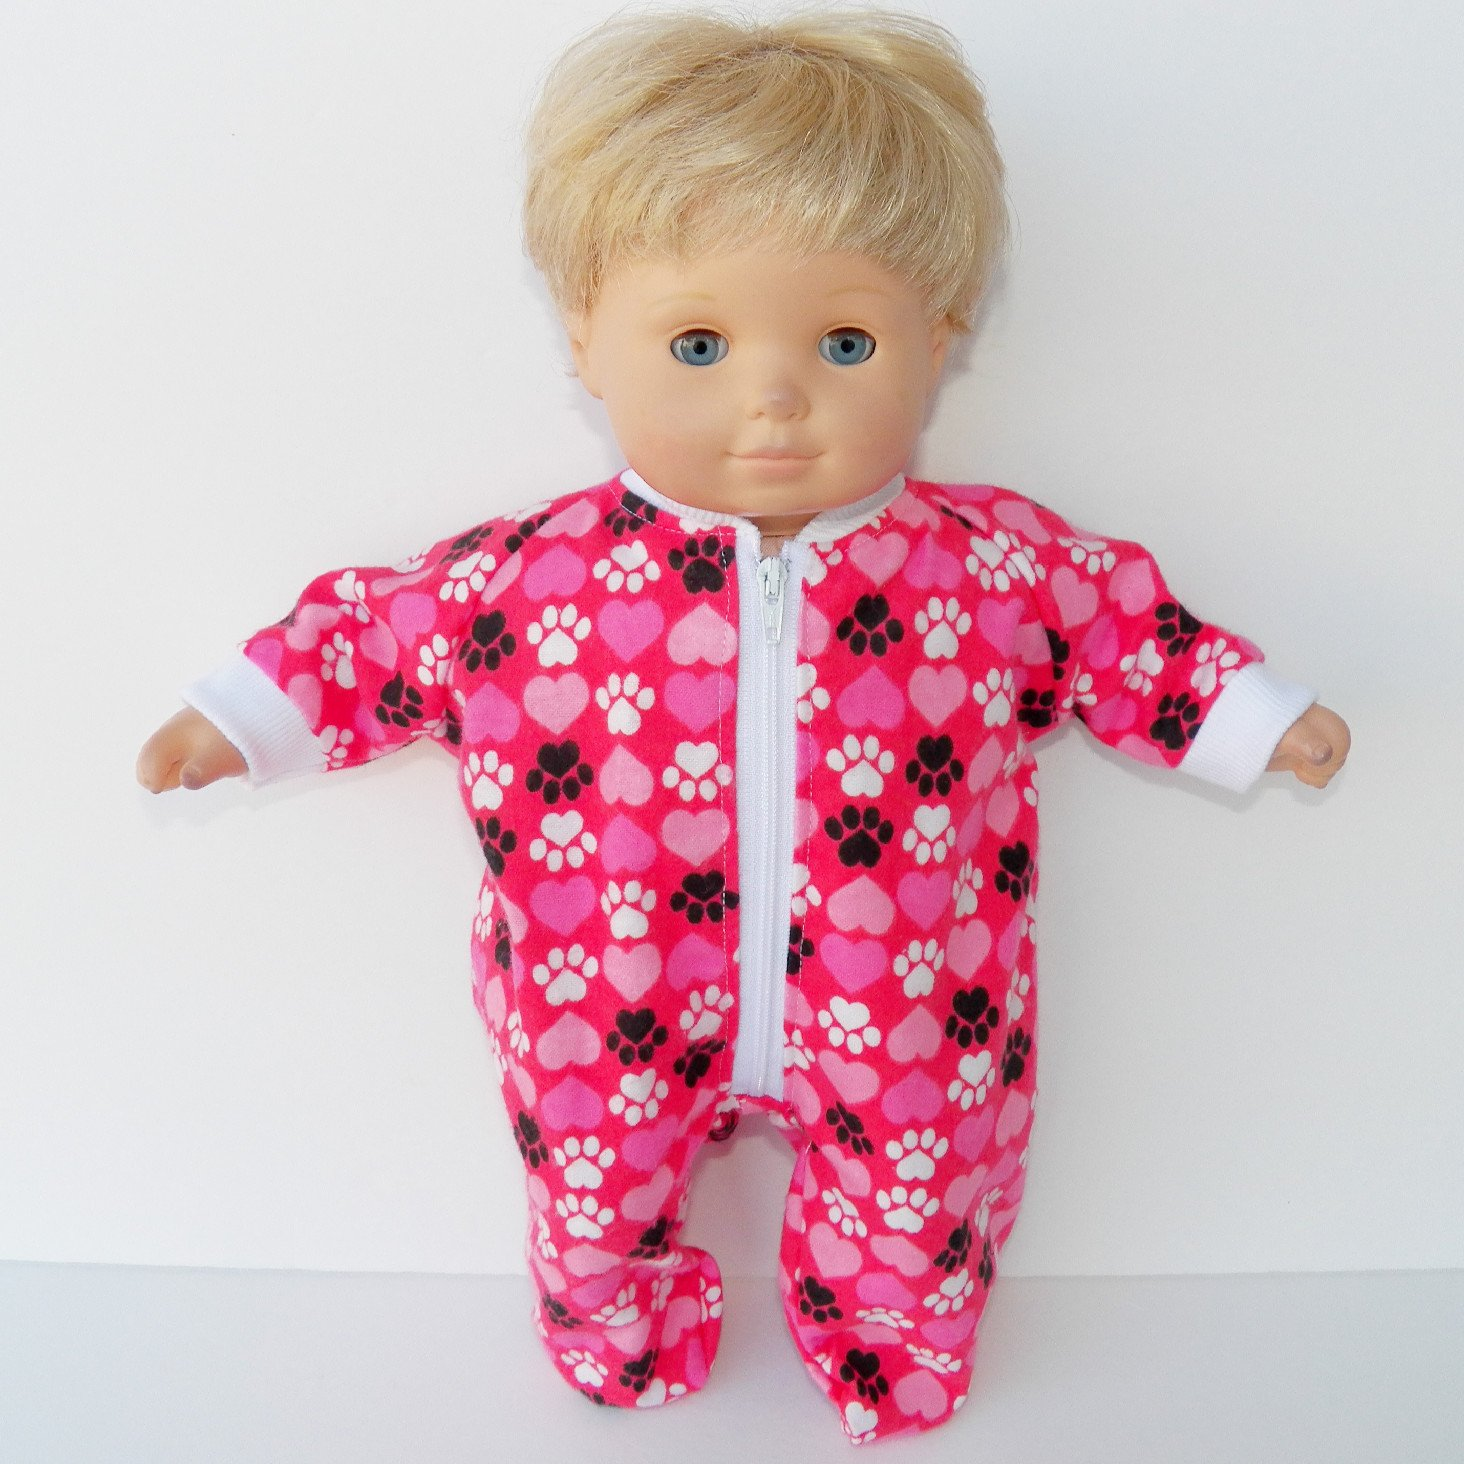 15 Inch Bitty Baby Doll Clothes Red Pink Heart Flannel Pajamas